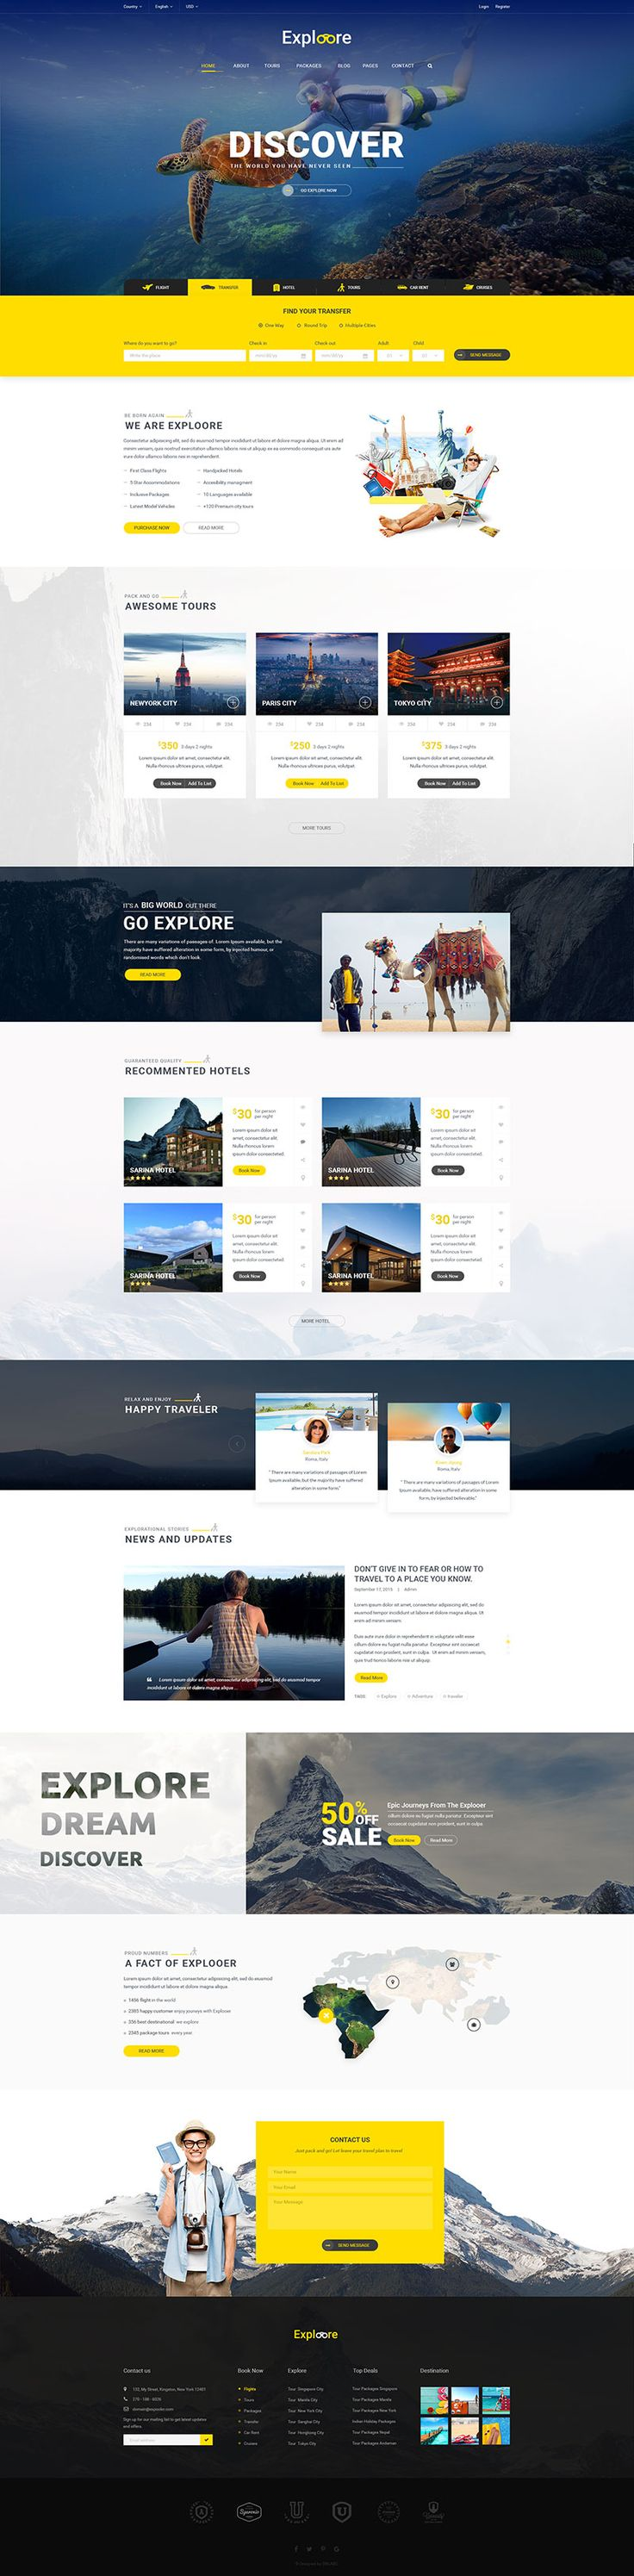 Extremely Helpful Apps You Should Have When Travelling EXPLOORE - Travel, Exploration, Booking PSD Template. Download themeforest.net/...